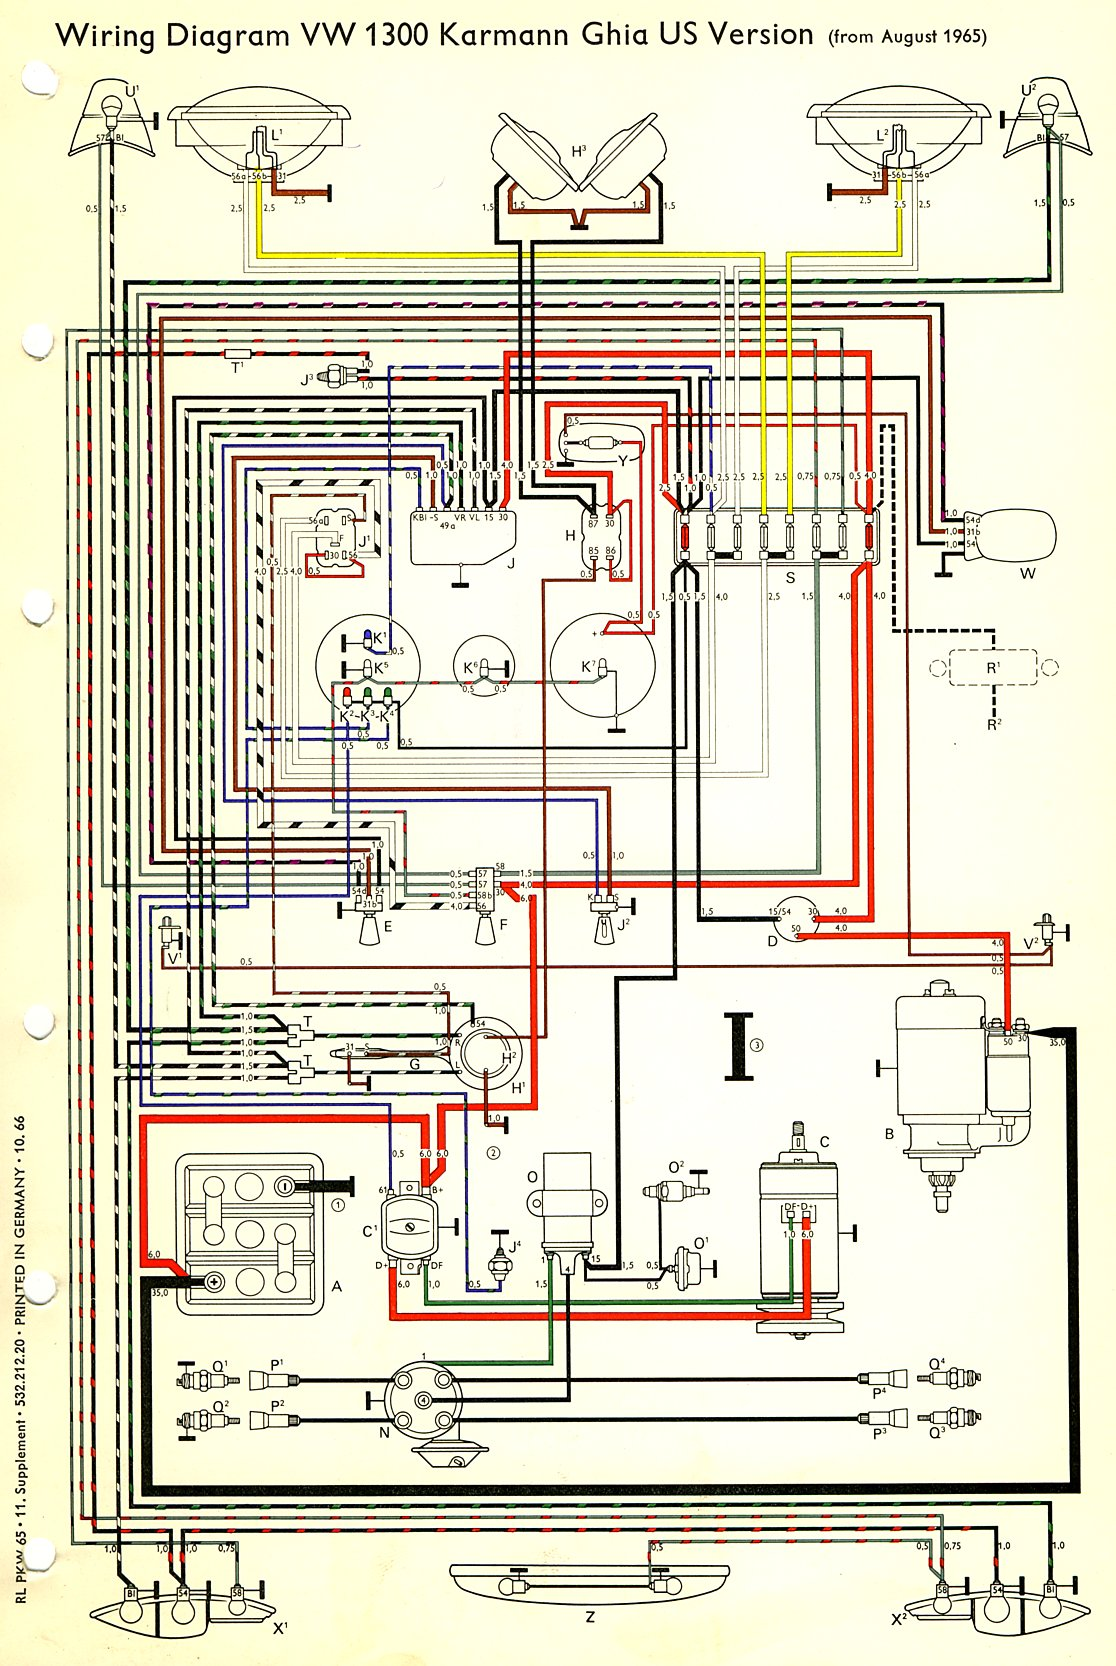 1959 Triumph Tr3 Wiring Diagram | Wiring Diagram Liries on porsche 914 wiring, triumph gt6 alternator wiring, jeep cherokee wiring, triumph spitfire wiring, triumph stag wiring, triumph tr4 wiring, mg midget wiring, triumph tr6 wiring, ford mustang wiring, ford pinto wiring, dodge dakota wiring, triumph scrambler wiring, triumph tr25 wiring, tr6 dashboard wiring,